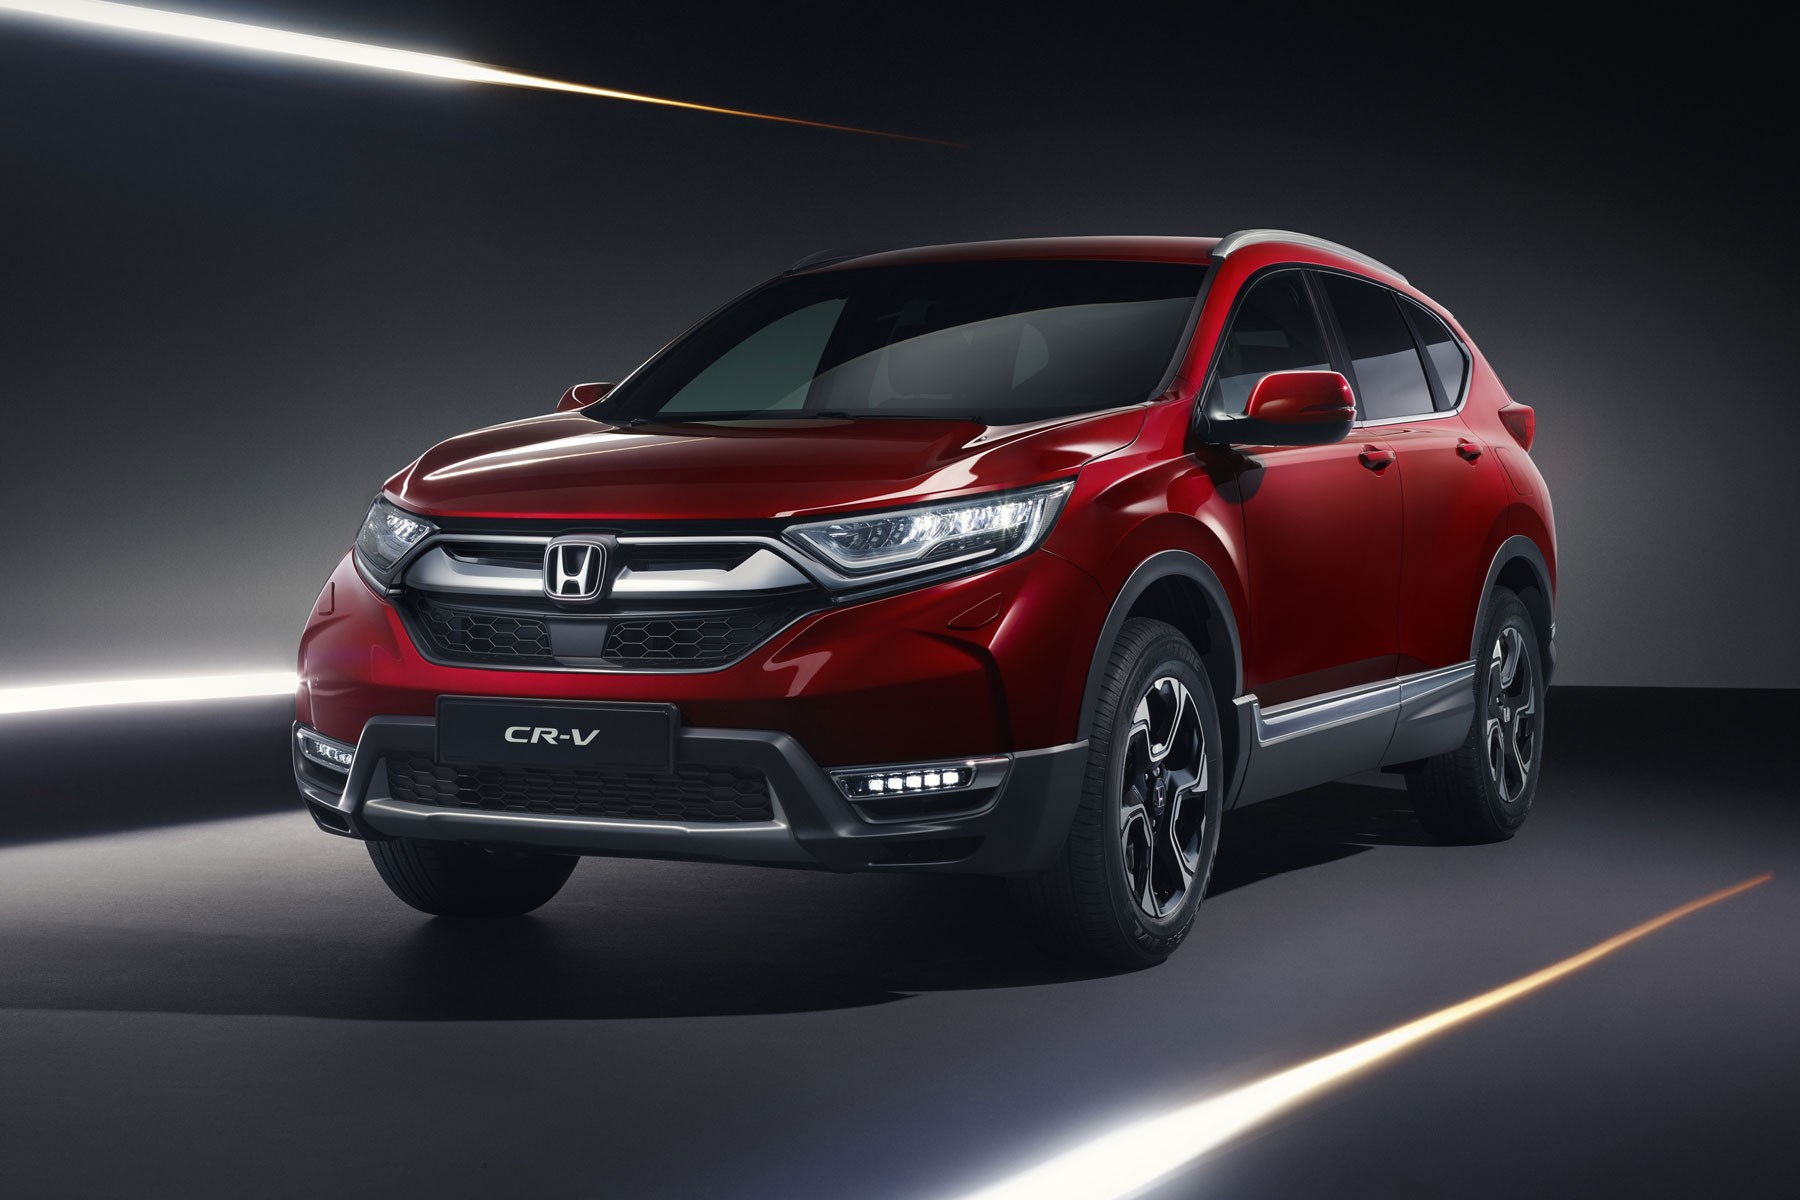 Honda CR-V (2018): news, info, pics, spec, hybrid | CAR ...